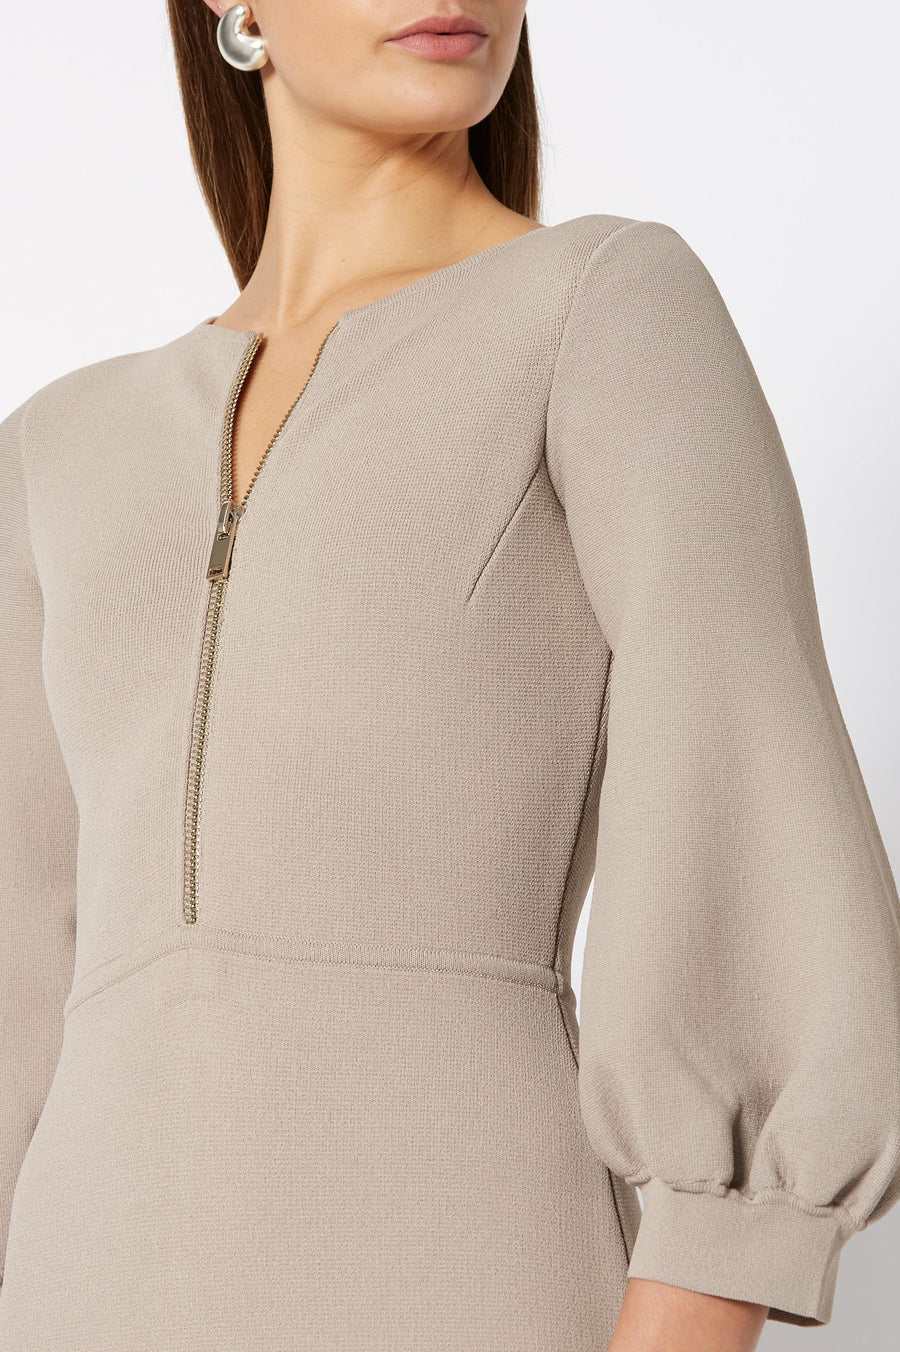 CREPE KNIT ZIP FRONT DRESS, BELL SLEEVES AND FALLS BELOW KNEE, COLOR CLAY